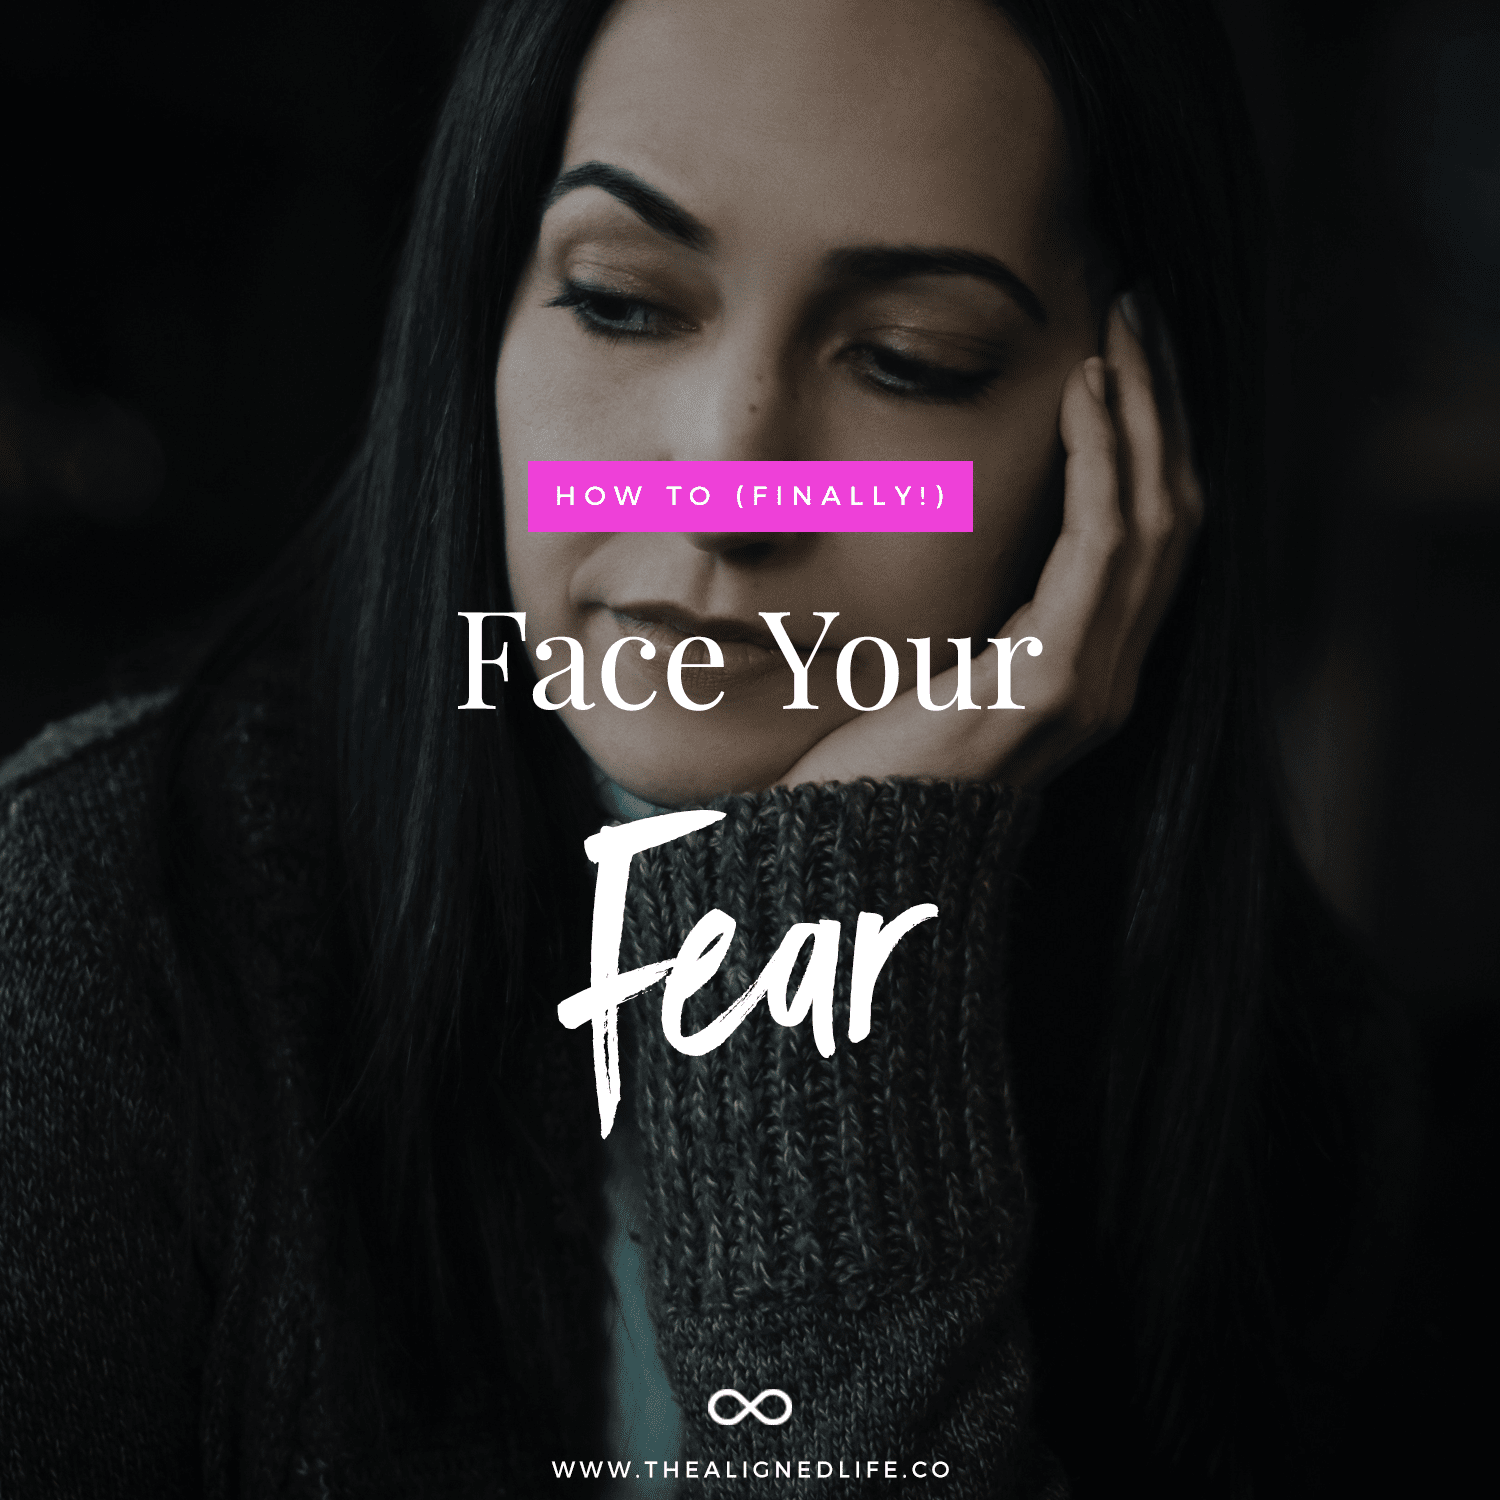 How To (Finally!) Face Your Fear